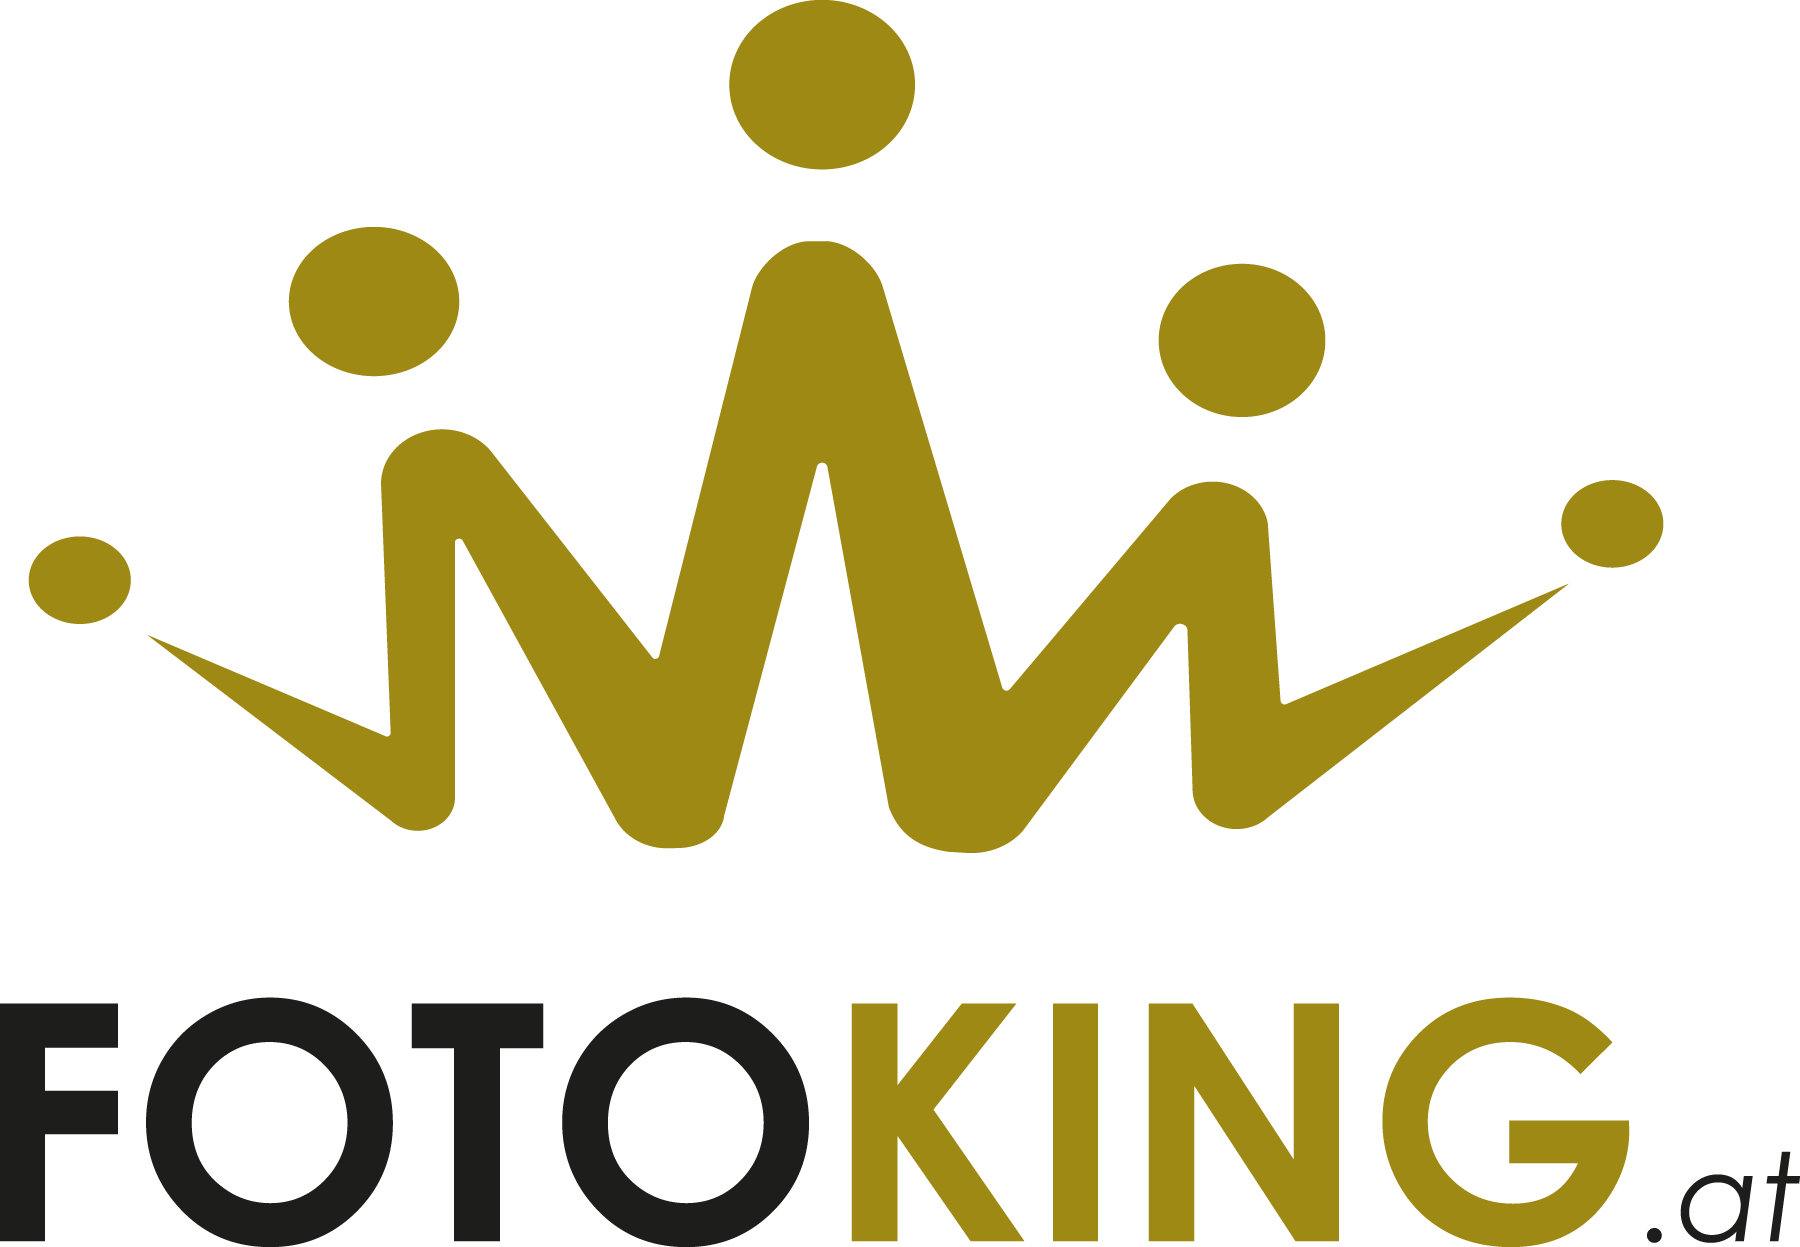 FotoKing.at